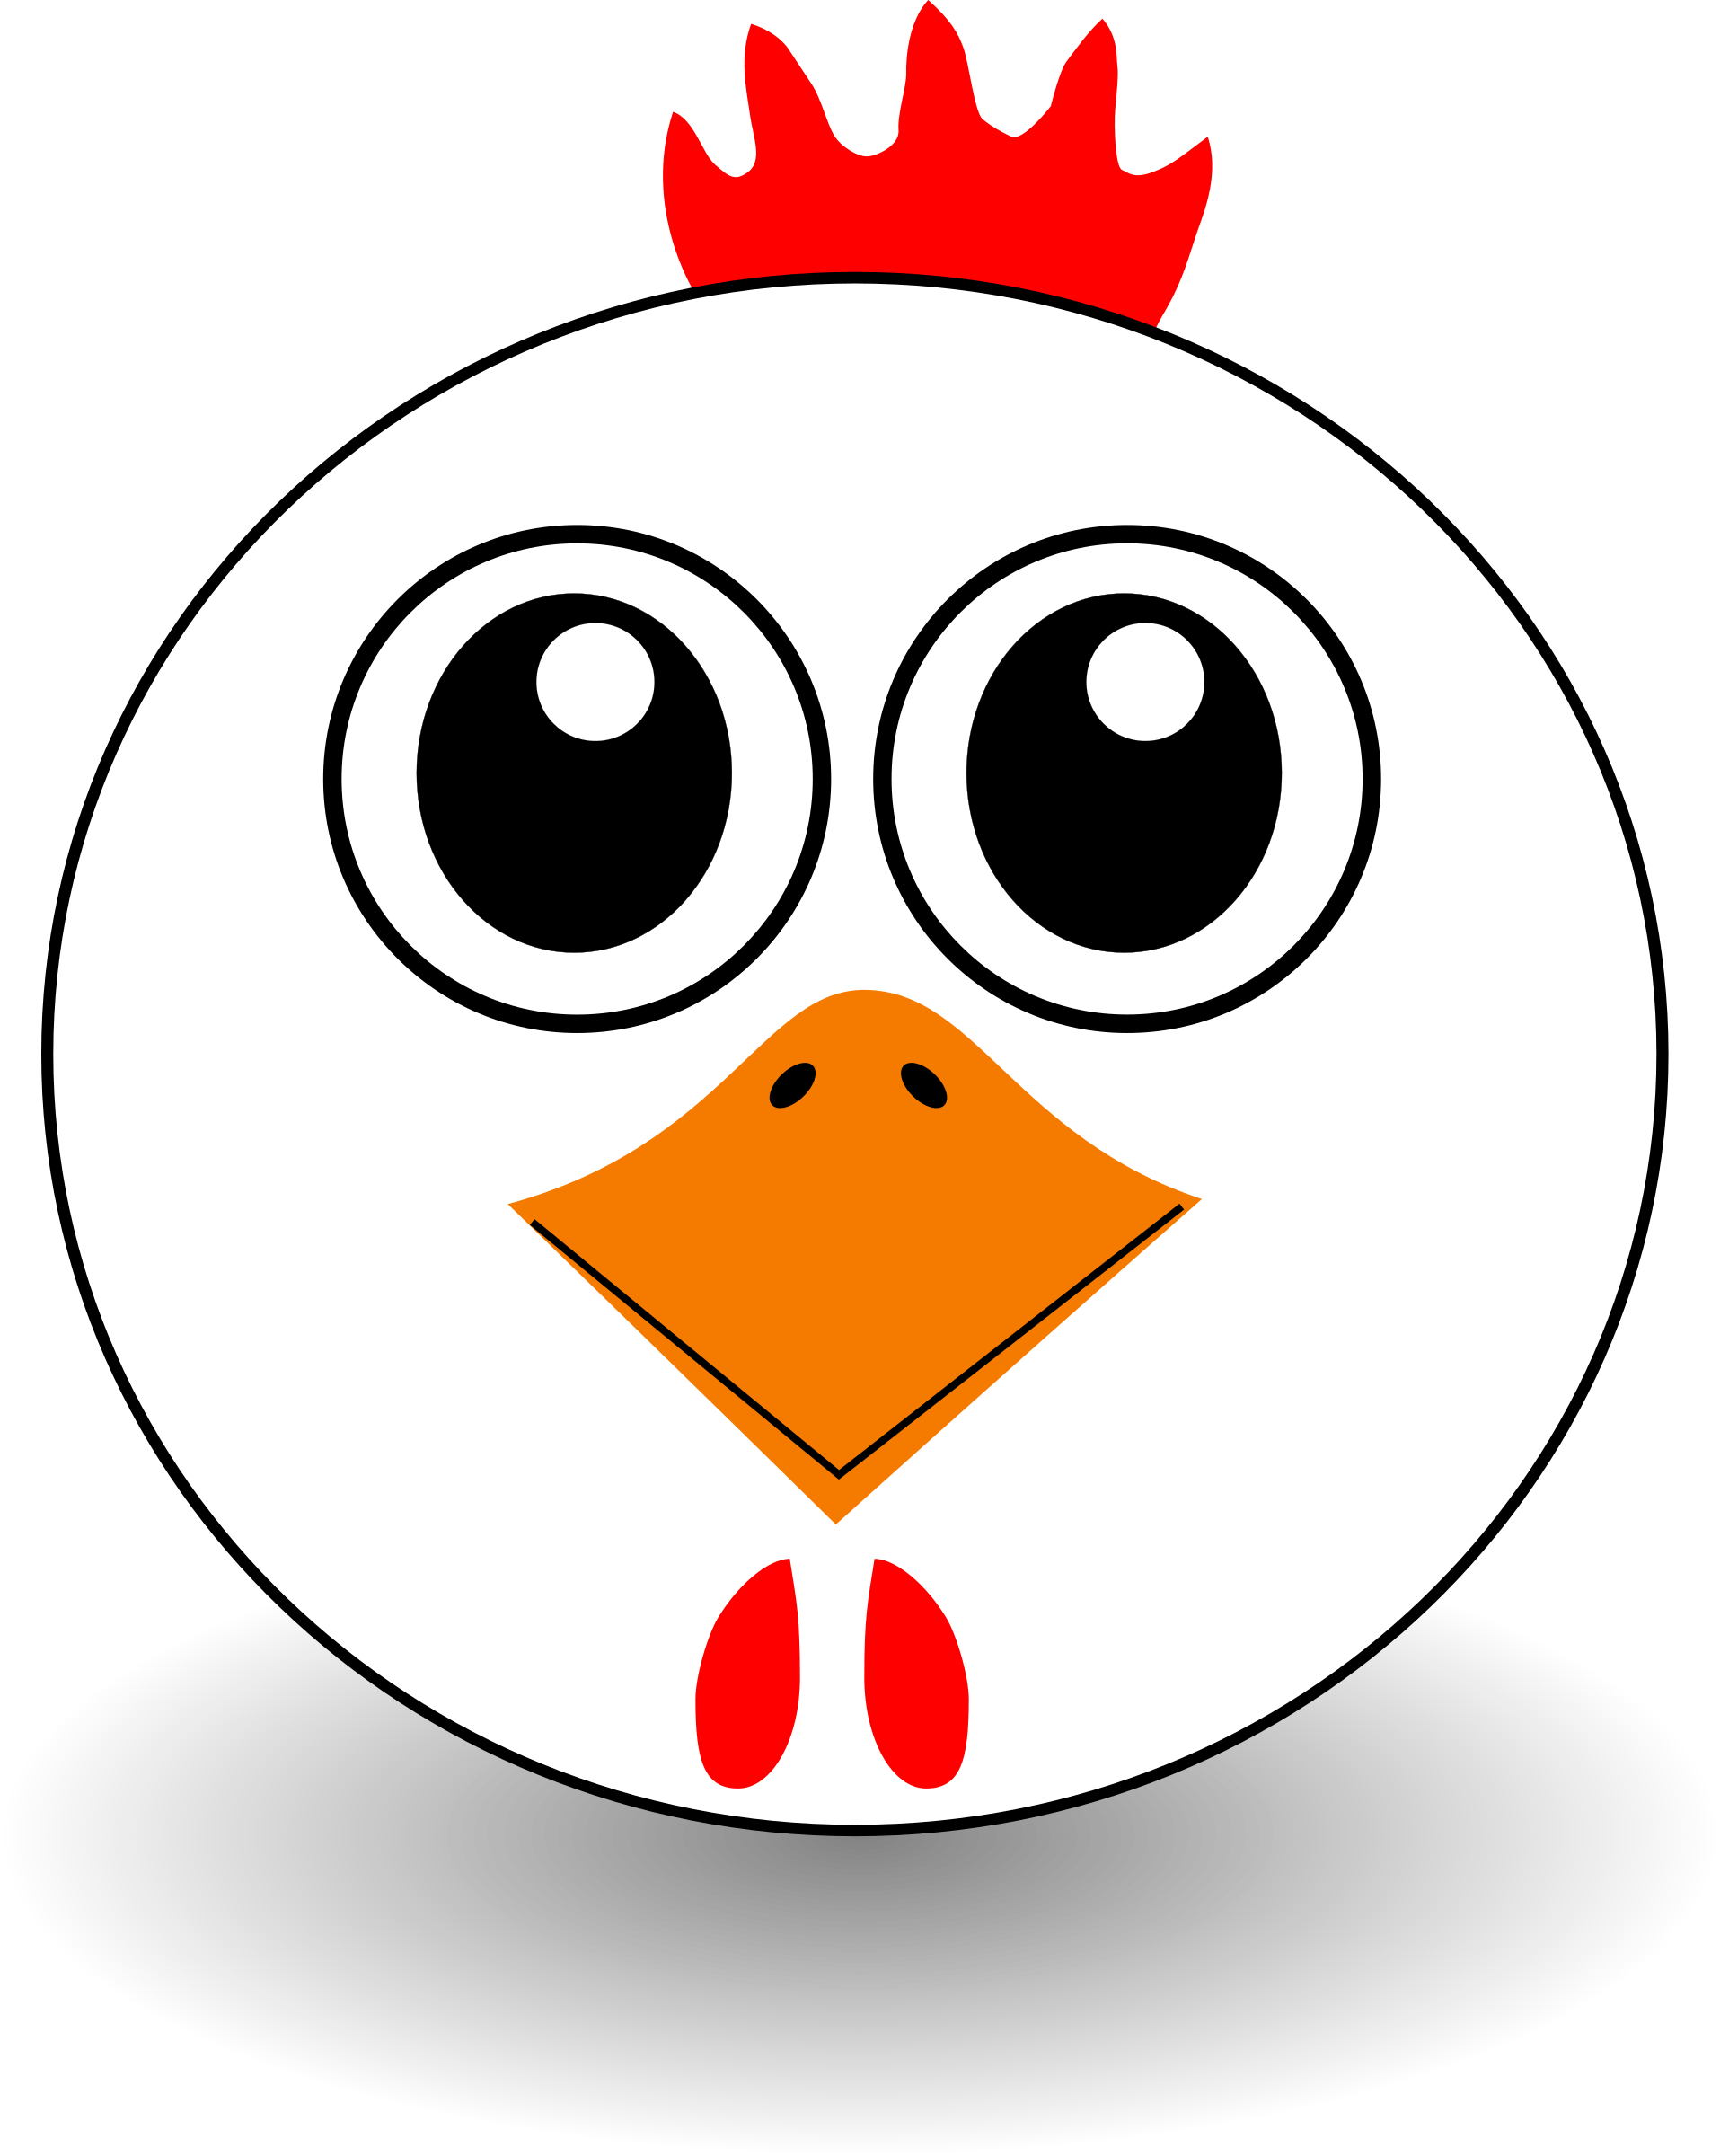 clipart download Chicken clipart cycle. Funny face cartoon by.